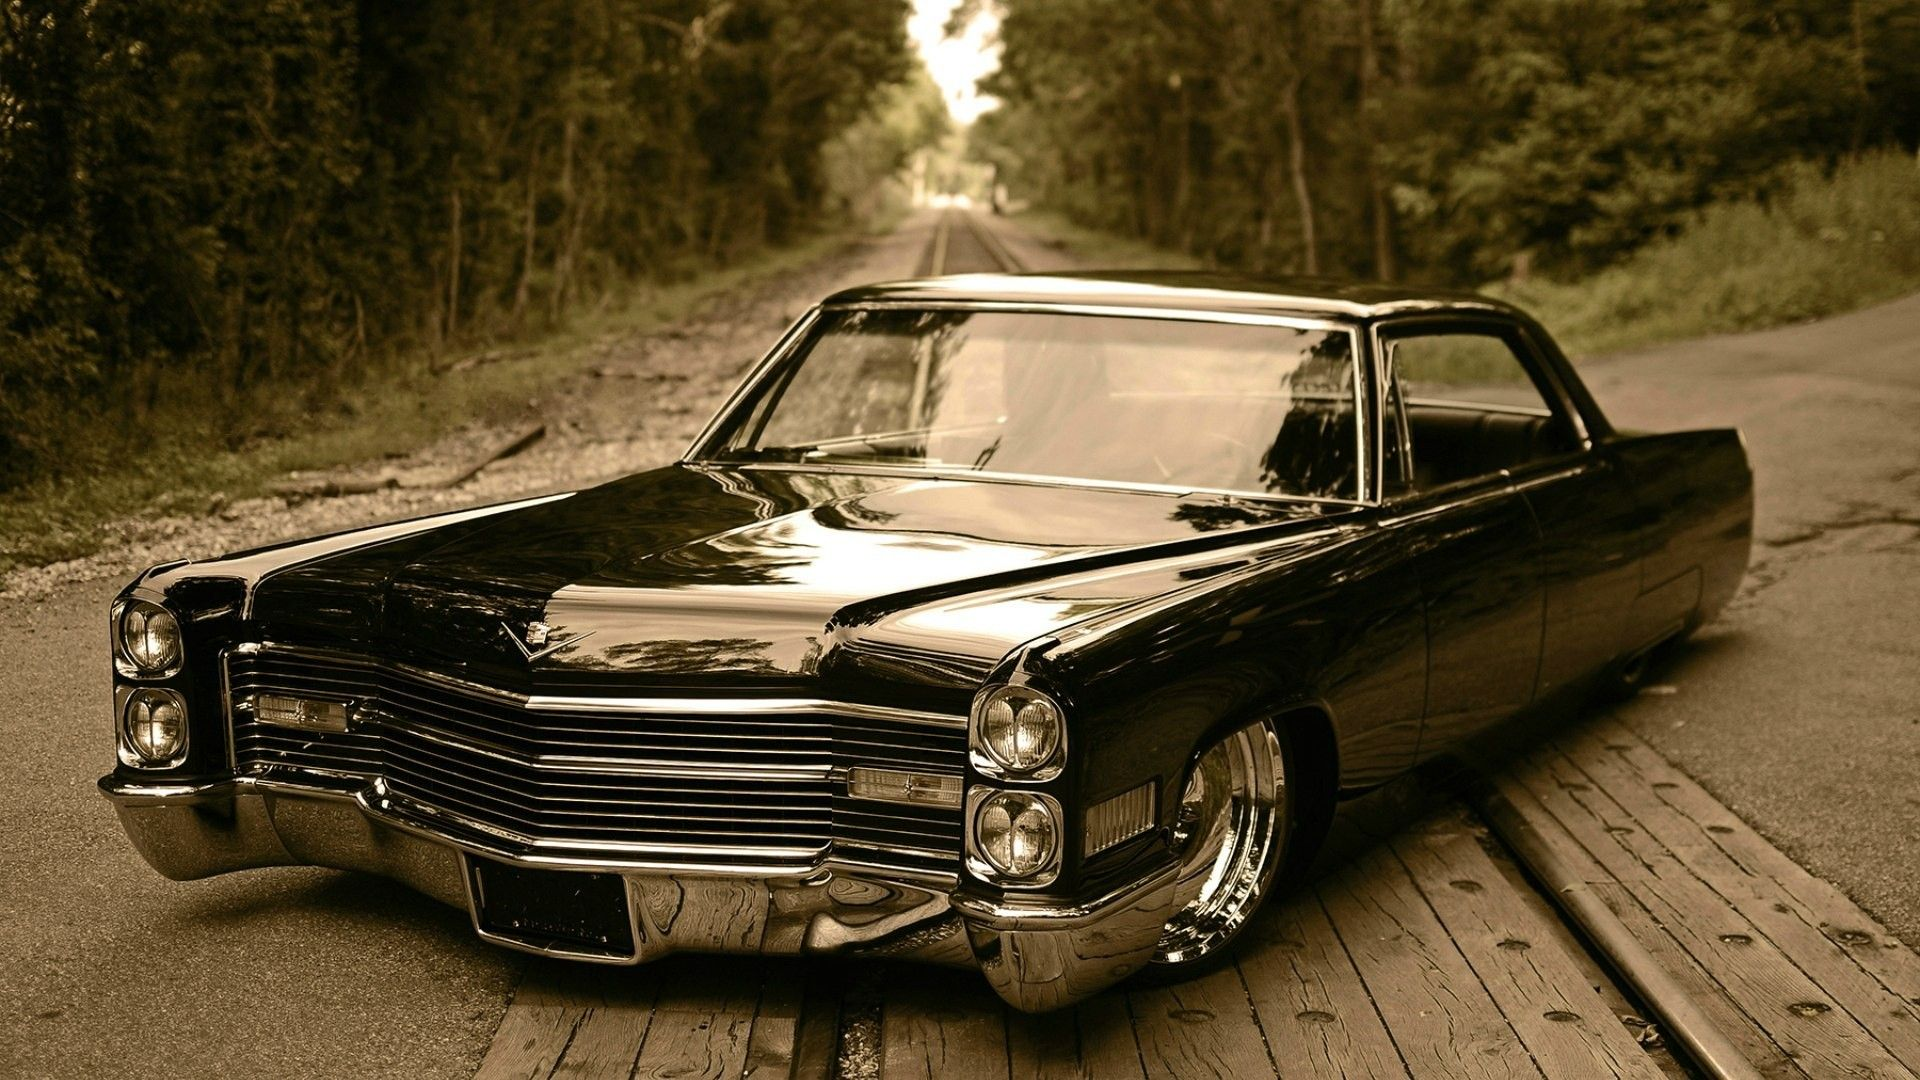 X Wallpaper Cars Pinterest Muscles Cars And Cadillac - Badass old cars